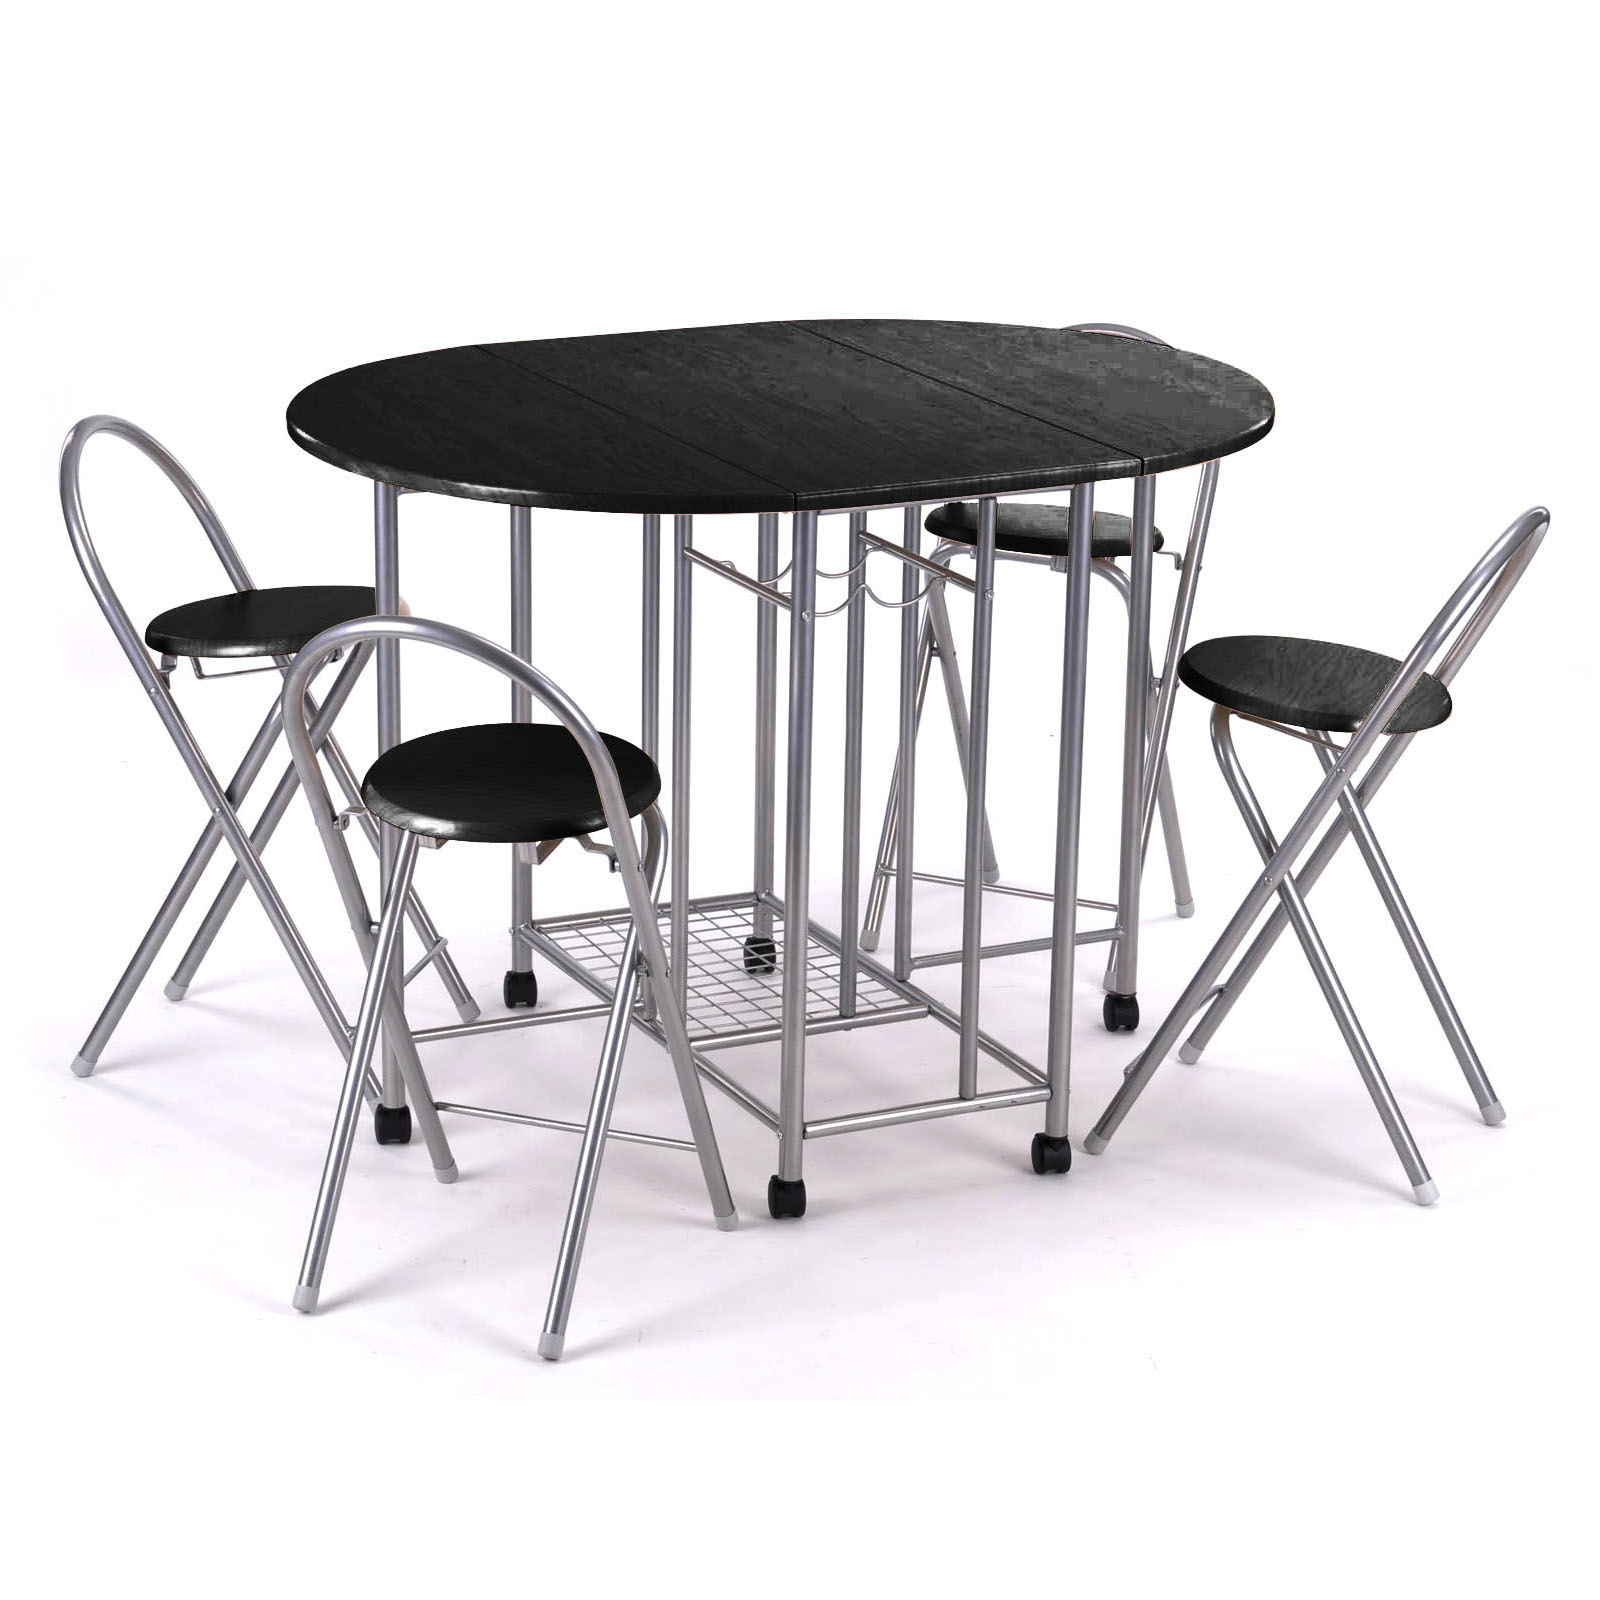 folding kitchen table and chairs set photo - 3